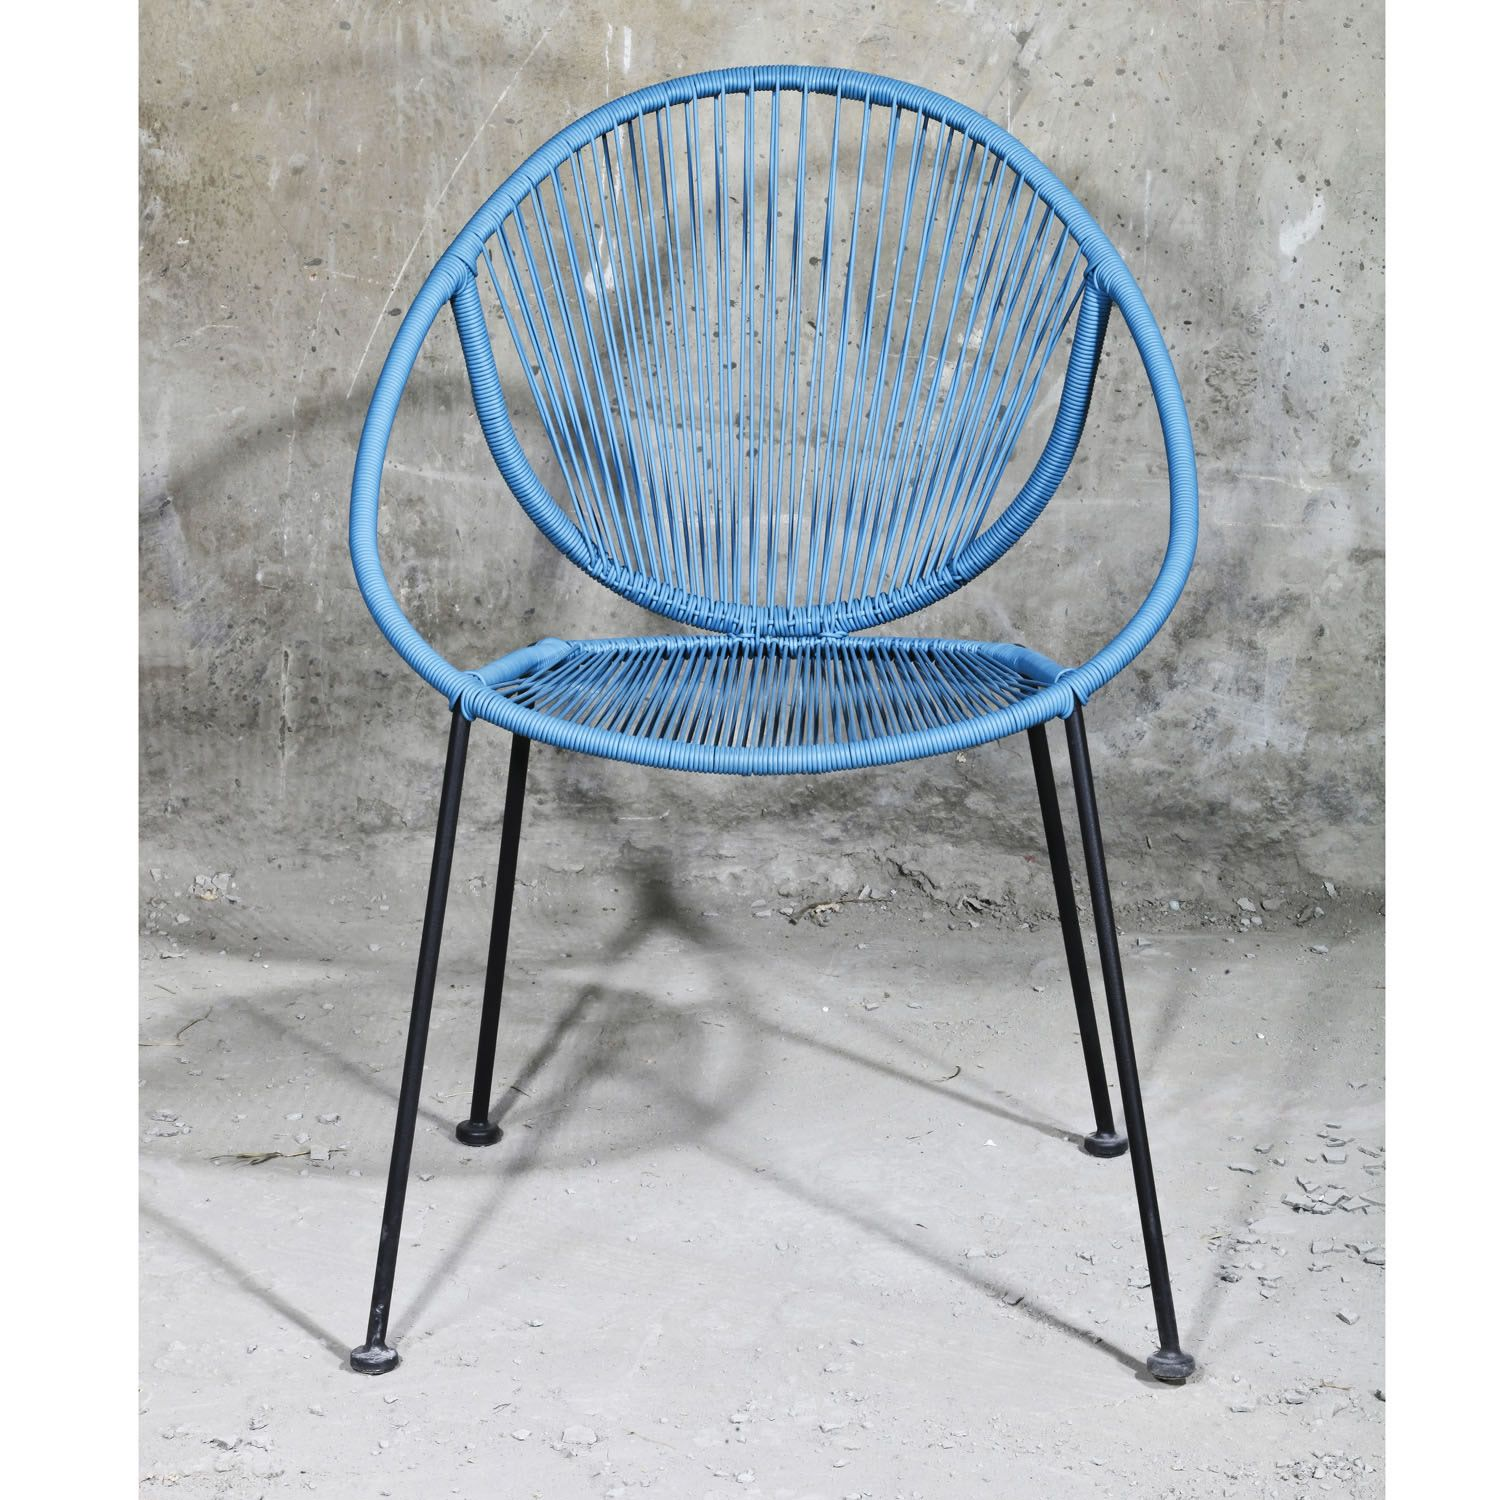 String Chair Outfit Garden Metal And Pvc String Chair In Blue The Uk